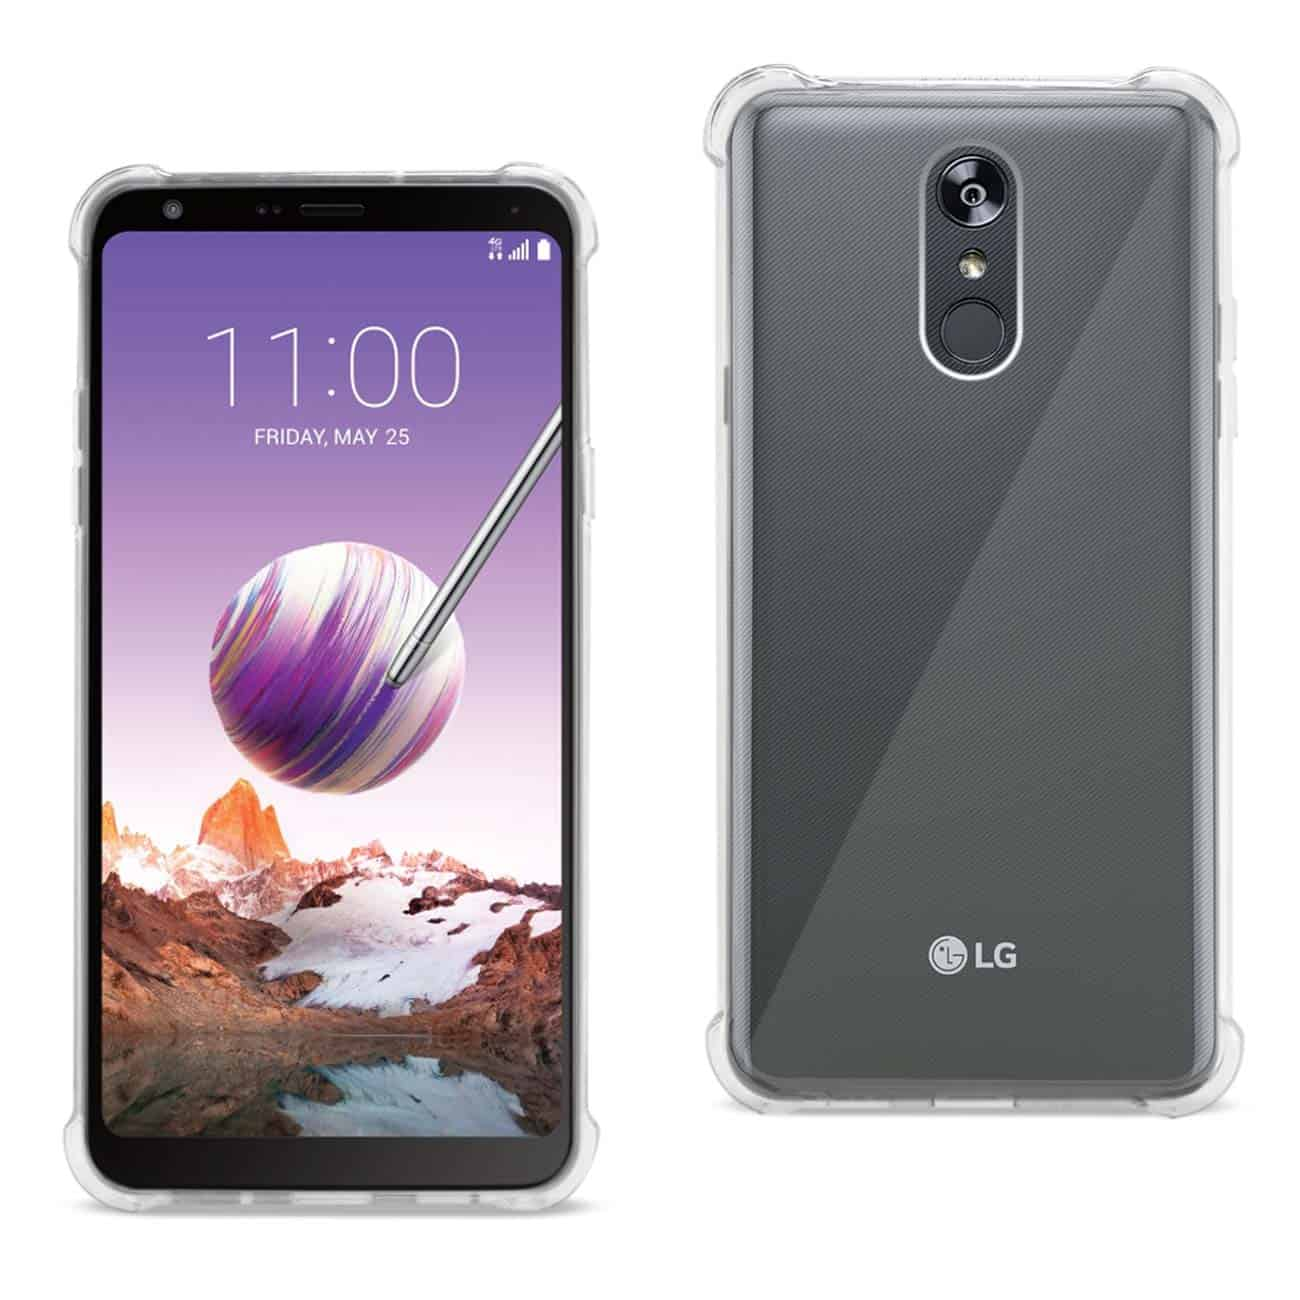 LG Stylo 4 Clear Bumper Case With Air Cushion Protection In Clear